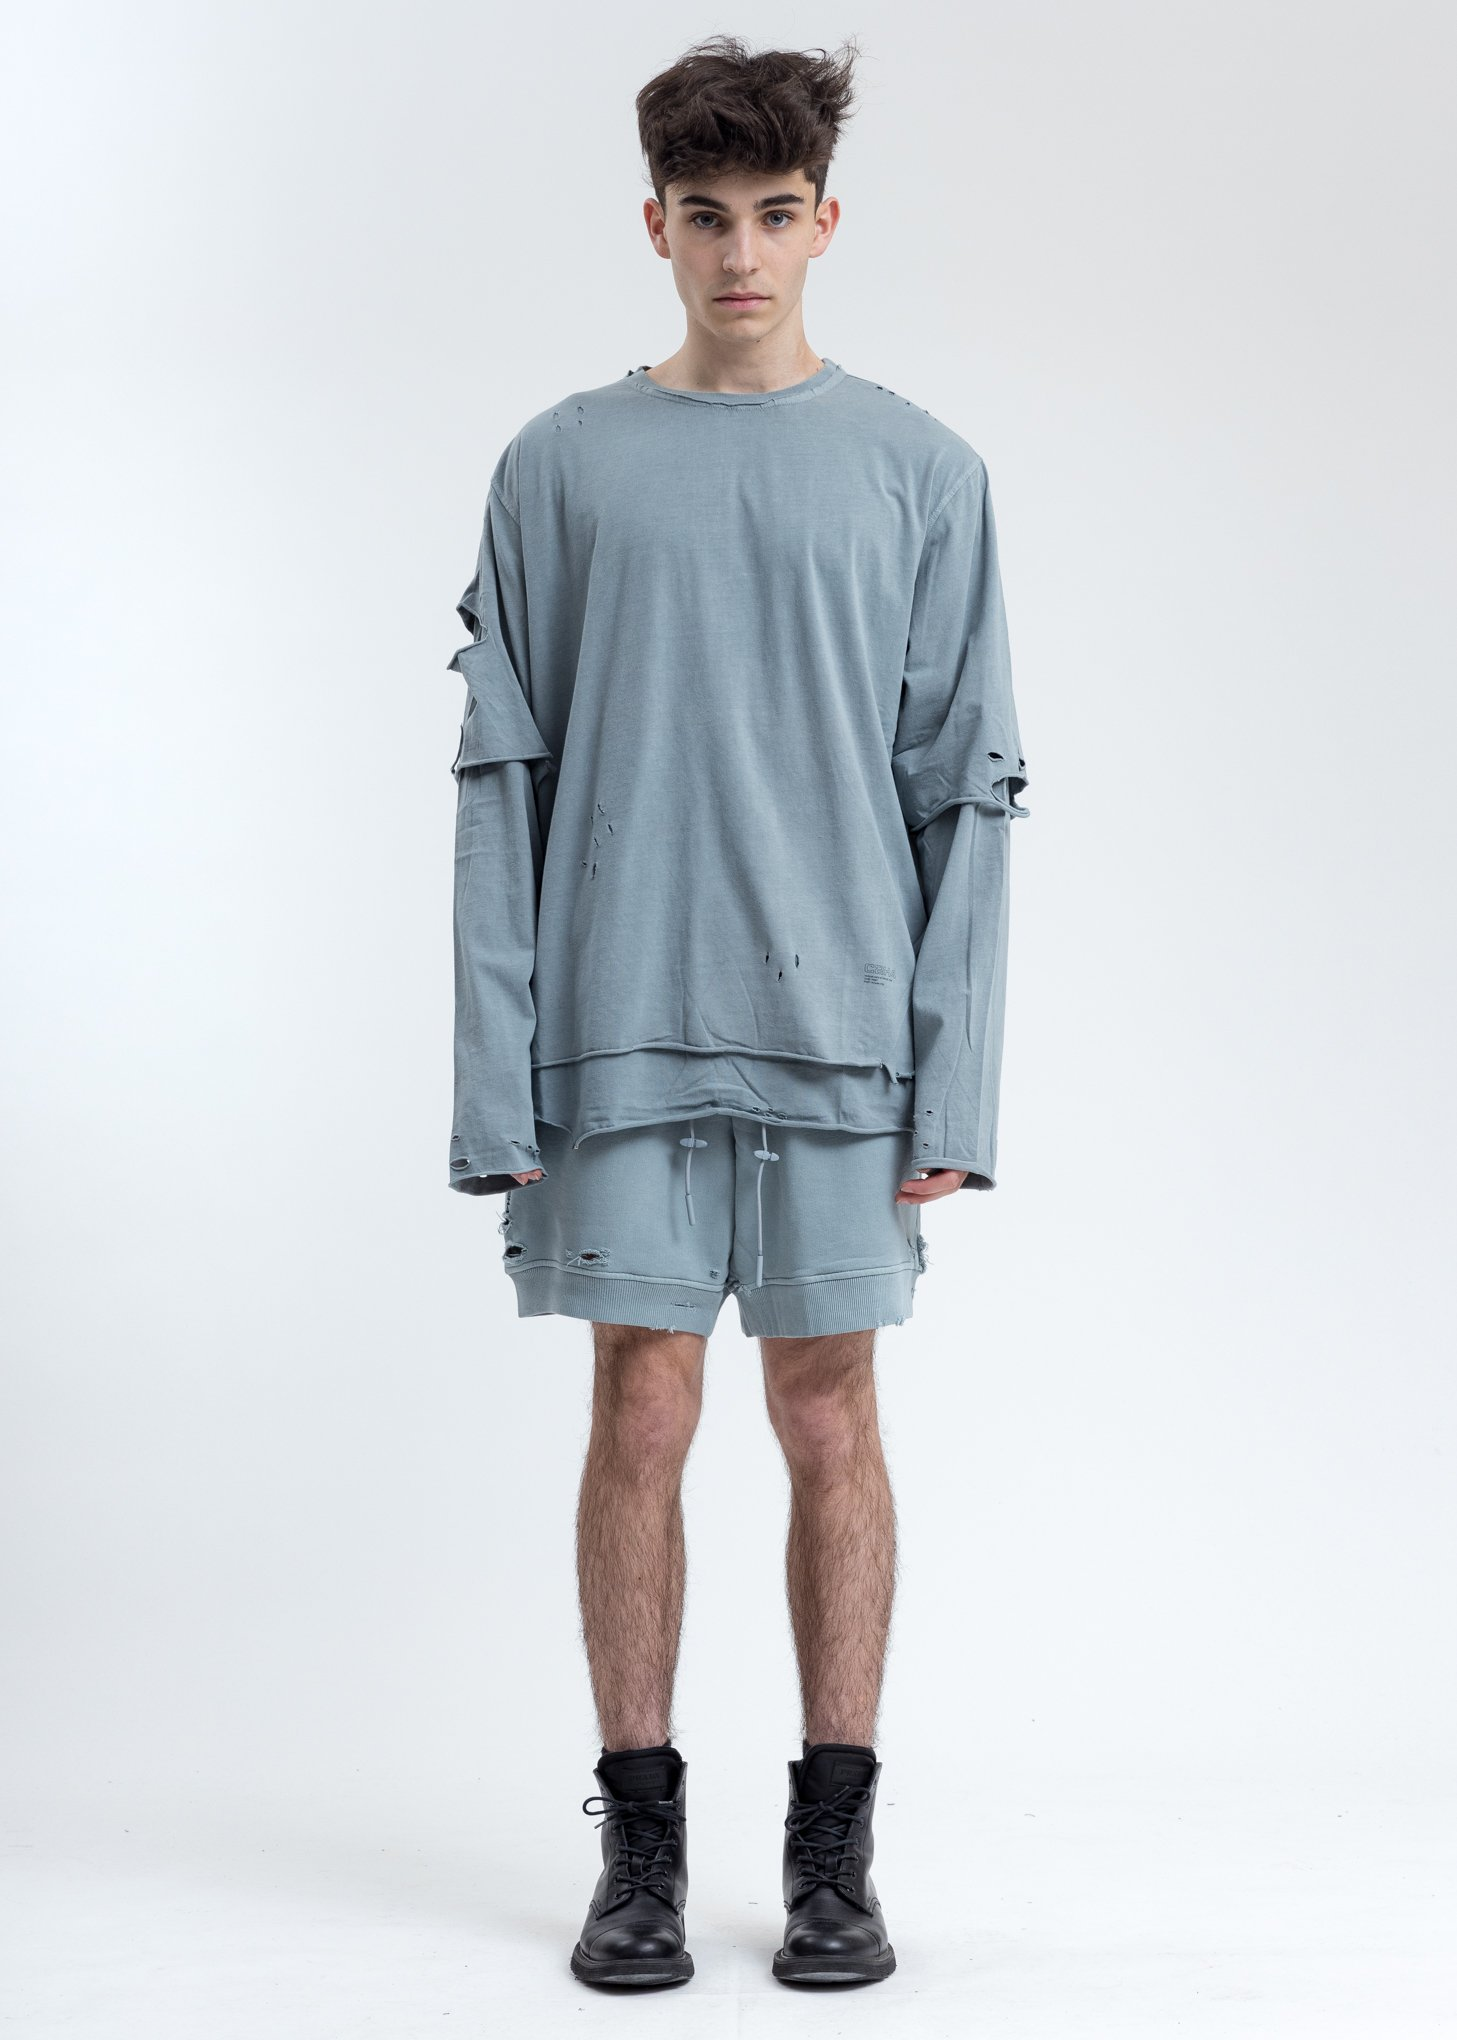 C2h4 Ruin Distressed Sweat Shorts Grey Garmentory